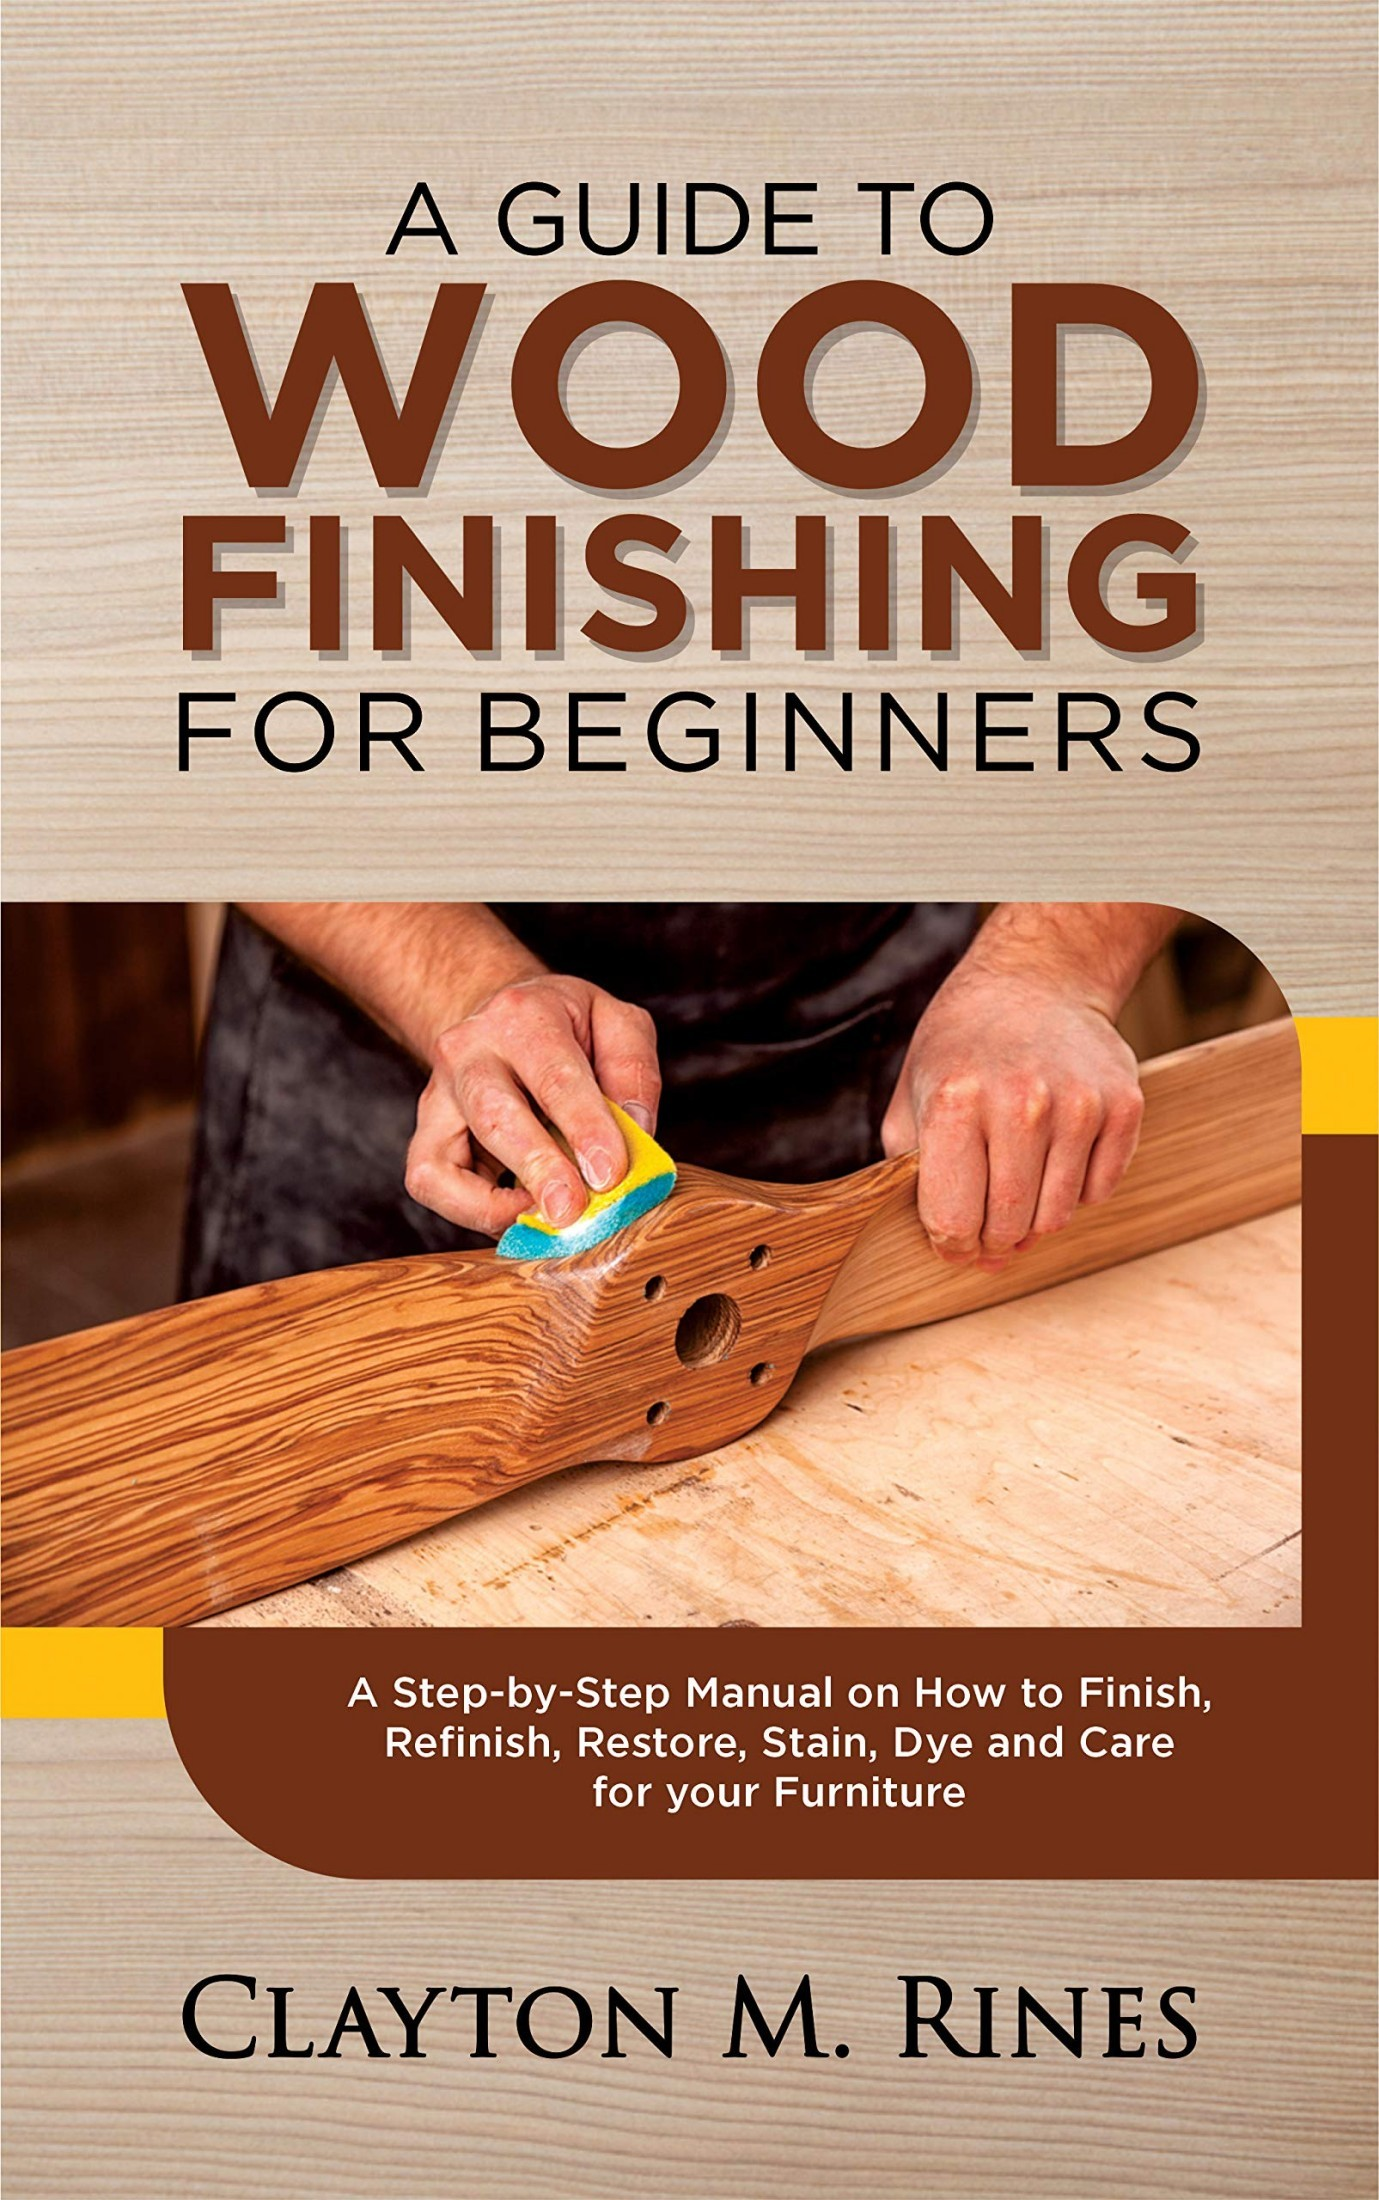 [PDF] [EPUB] A Guide to Wood Finishing for Beginners: A Step-by-Step Manual on How to Finish, Refinish, Restore, Stain, Dye and Care for your Furniture Download by Clayton M. Rines